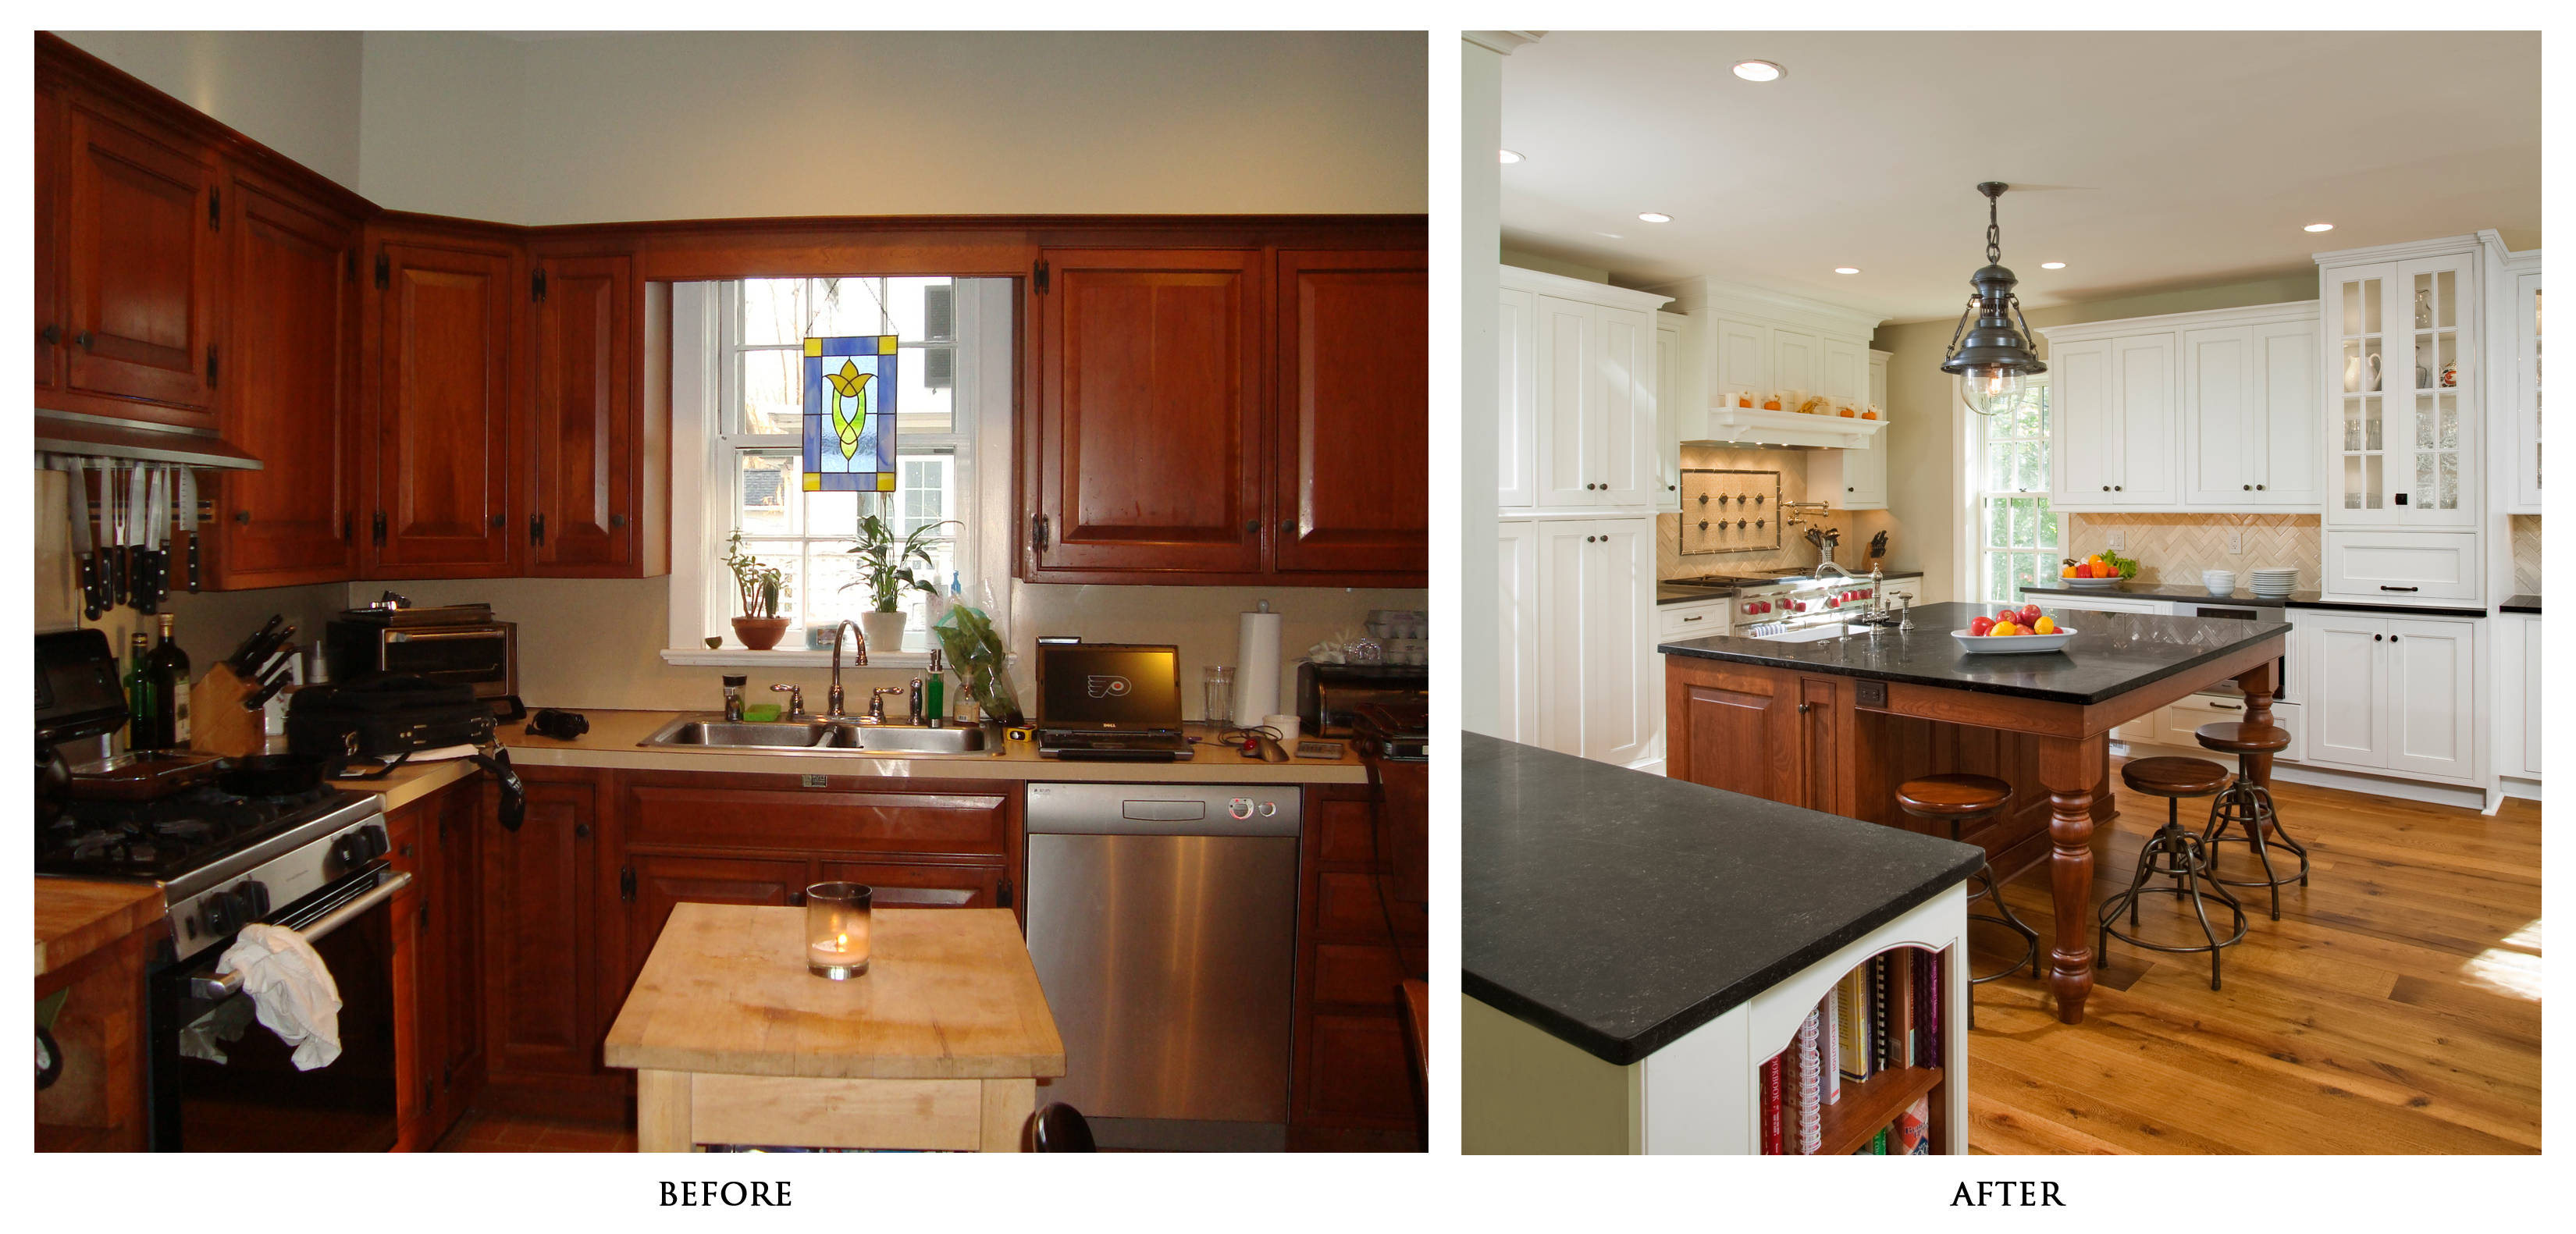 Kitchen Remodel Pictures Ideas home design ideas. kitchen makeover pictures kitchen remodeling